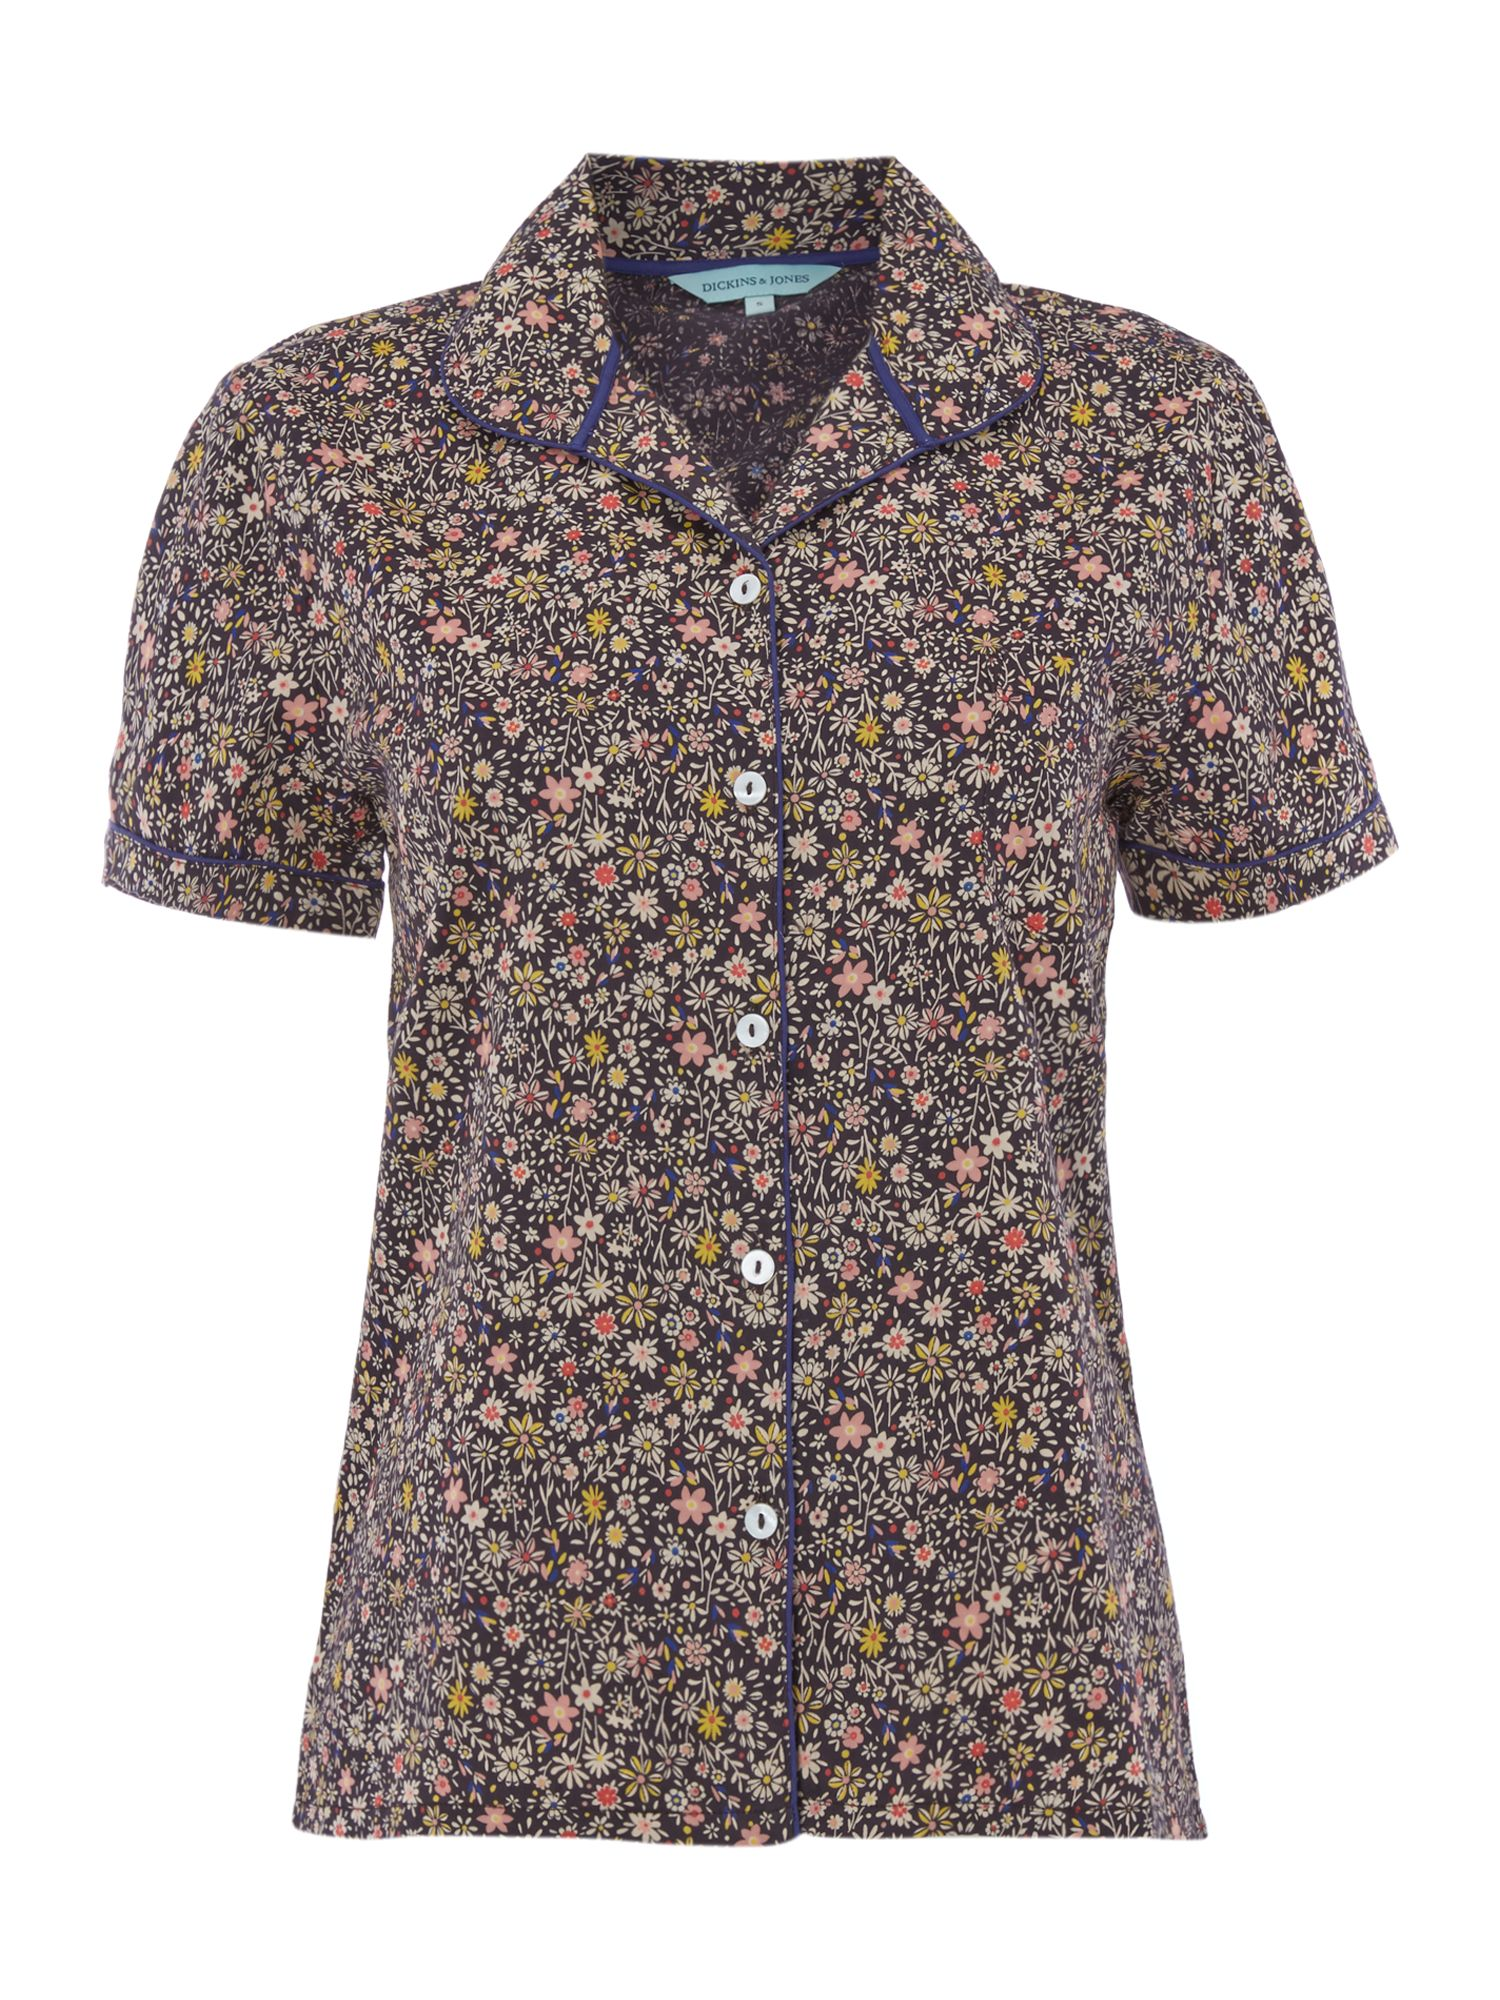 Ethal floral print short sleeve pj top